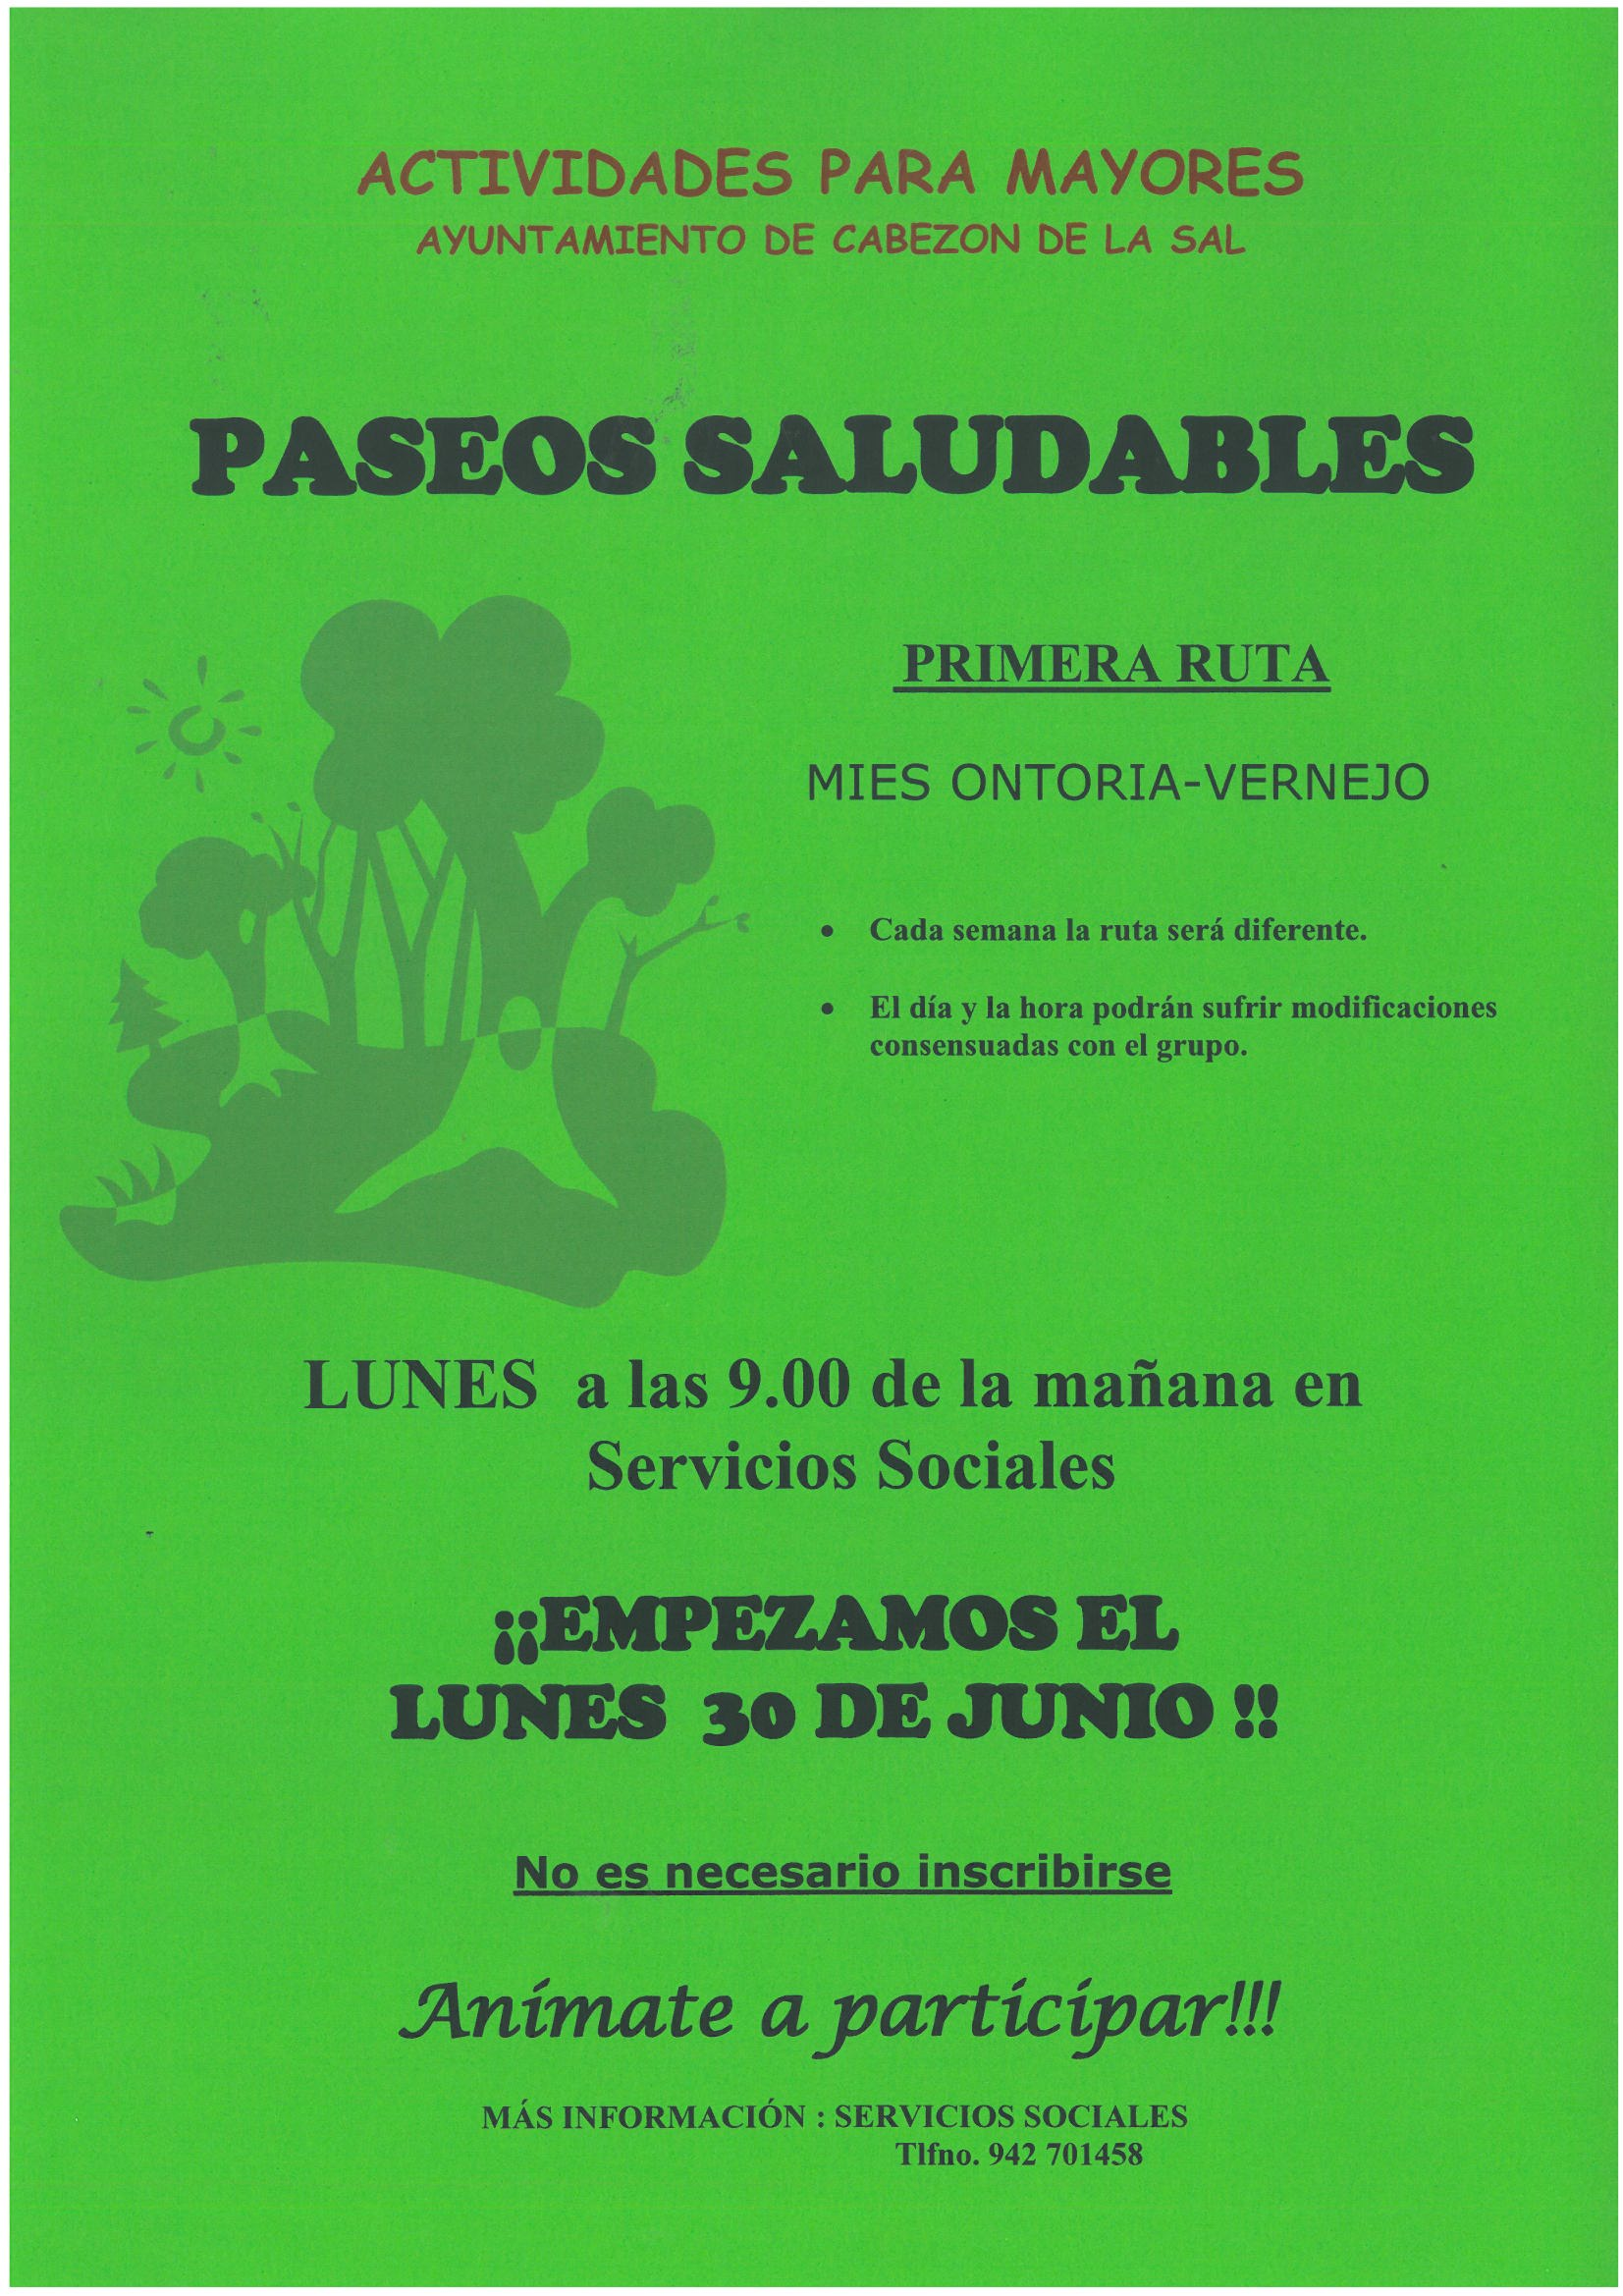 http://www.cabezondelasal.net/wp-content/uploads/2014/06/CARTEL-PASEOS-SALUDABLES-2014.jpg